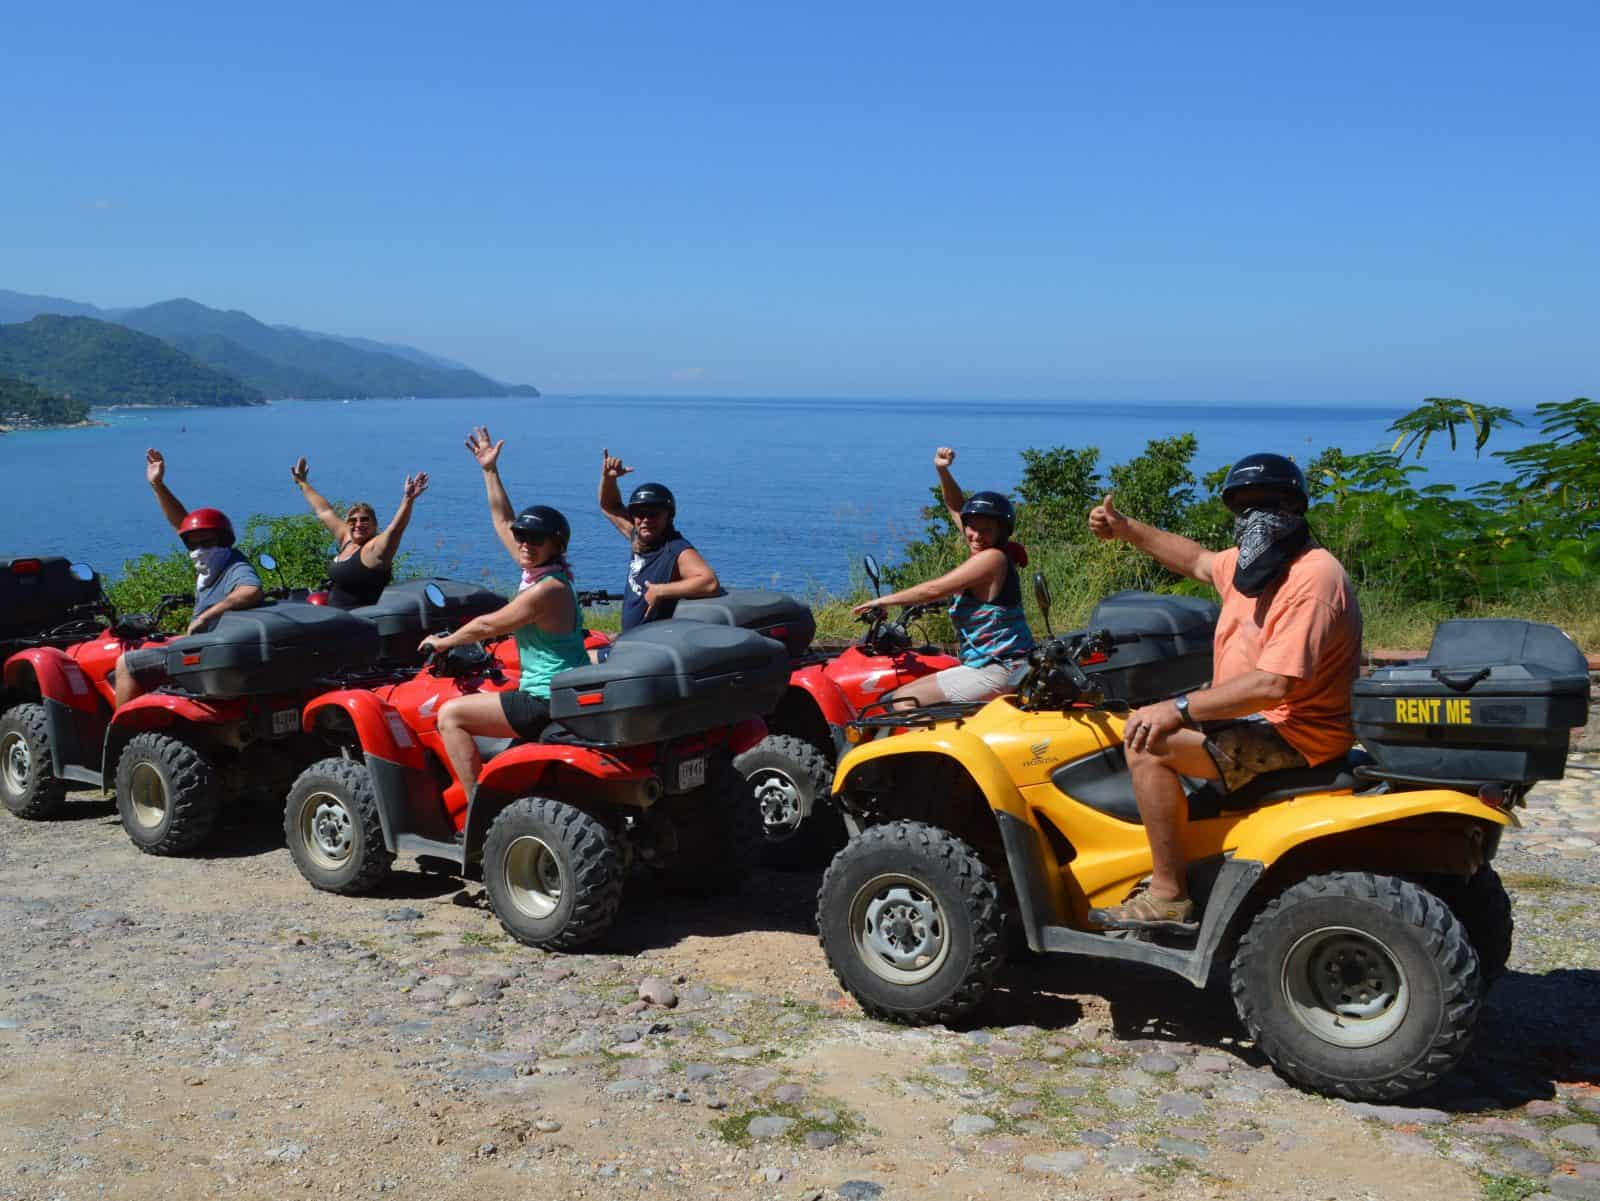 Estigo Tours ATV Tour in Puerto Vallarta